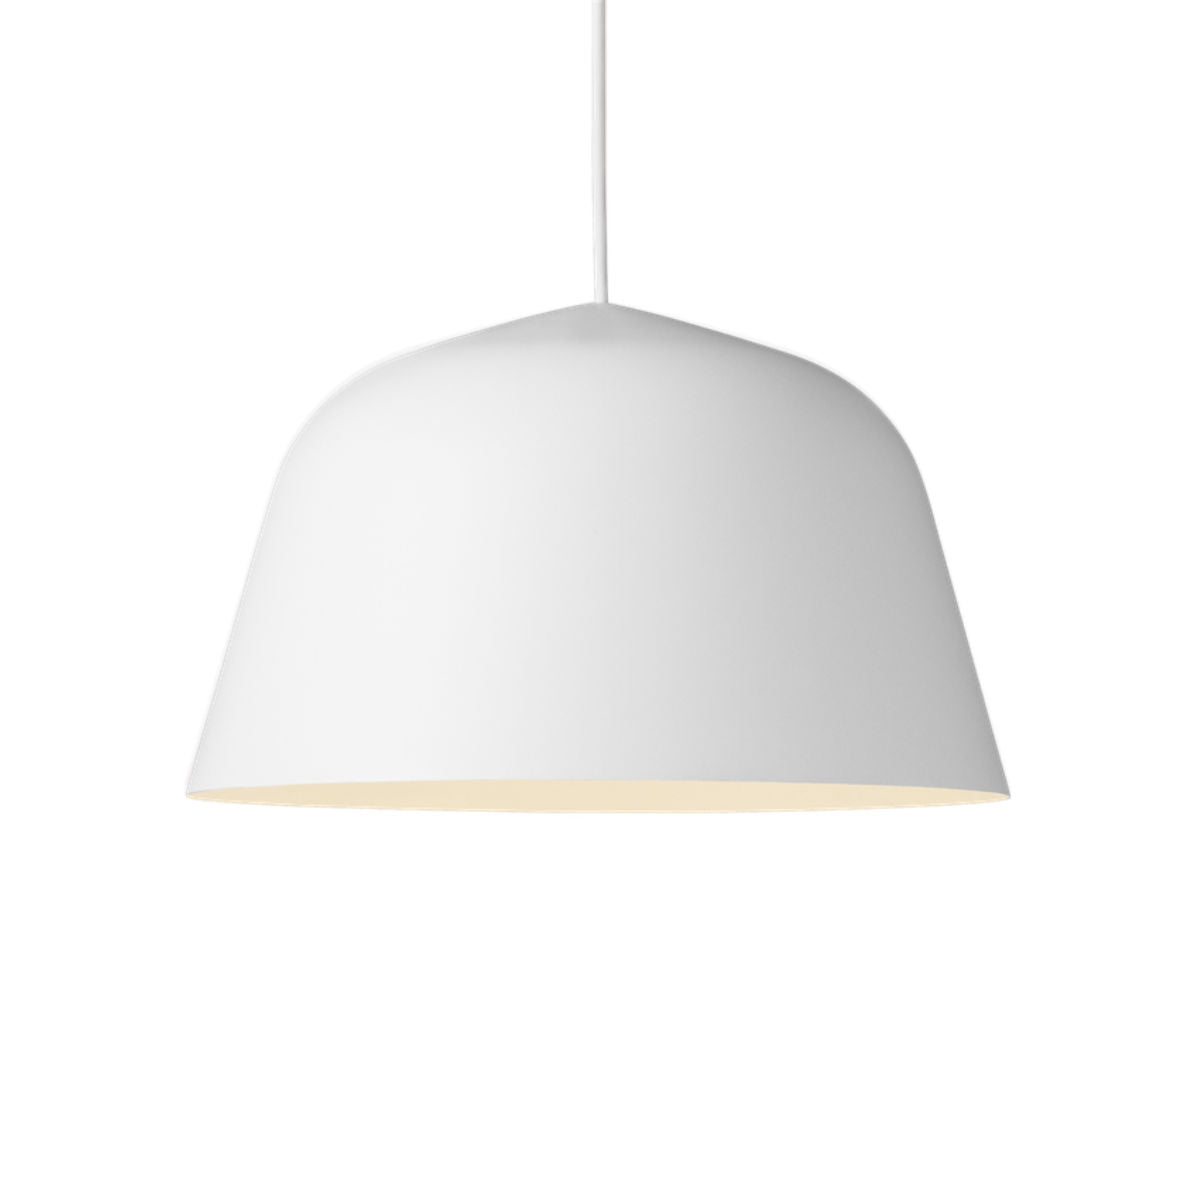 Muuto Ambit pendant lamp, white